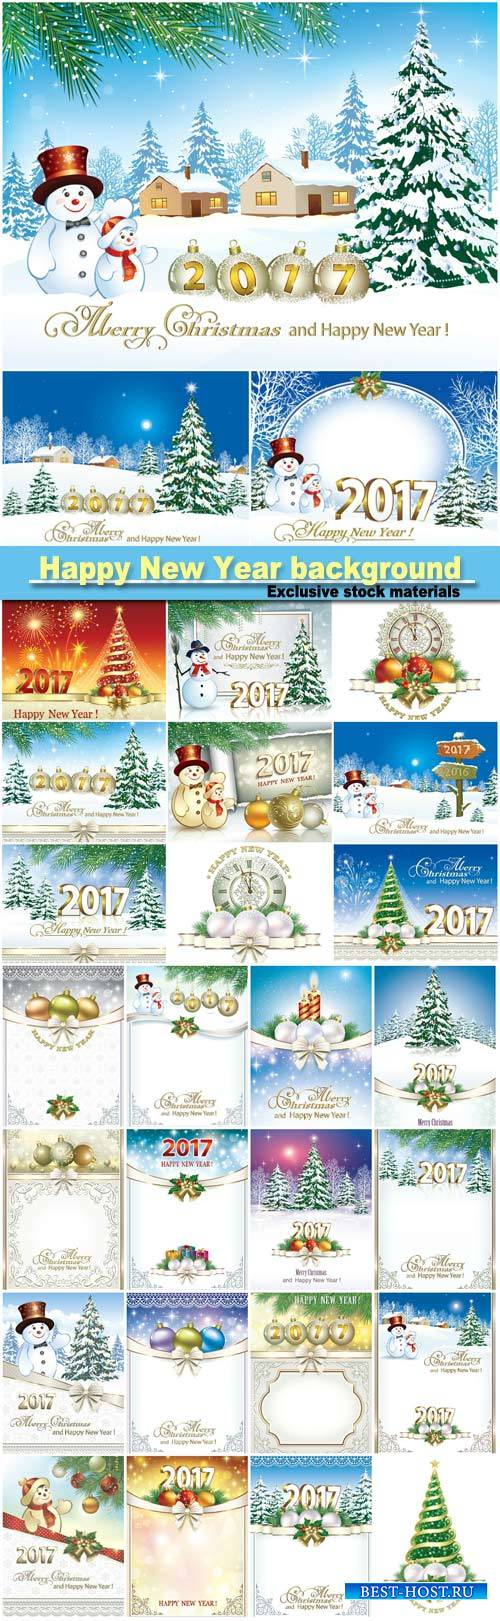 Happy new year 2017, Christmas design template